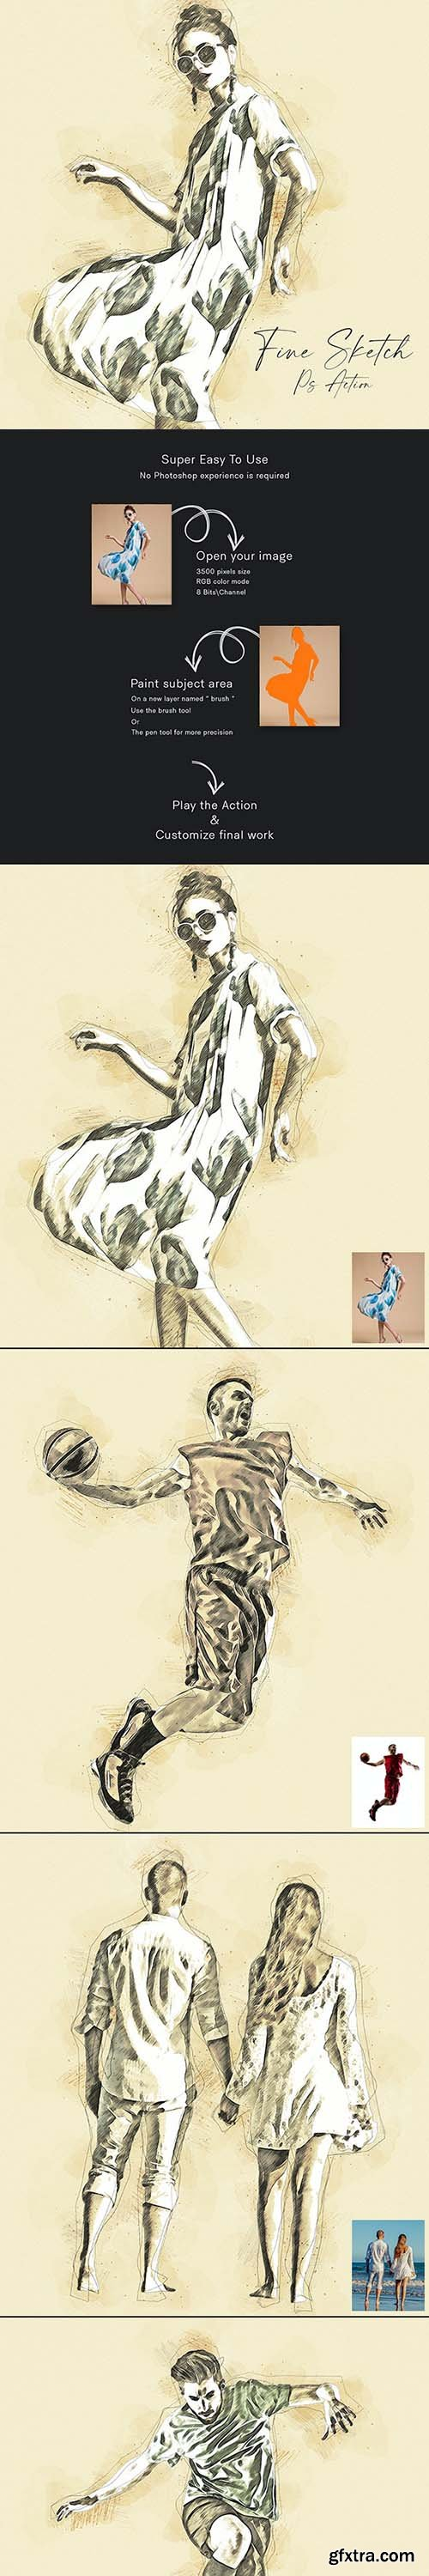 GraphicRiver - Fine Sketch Photoshop Action 31370147